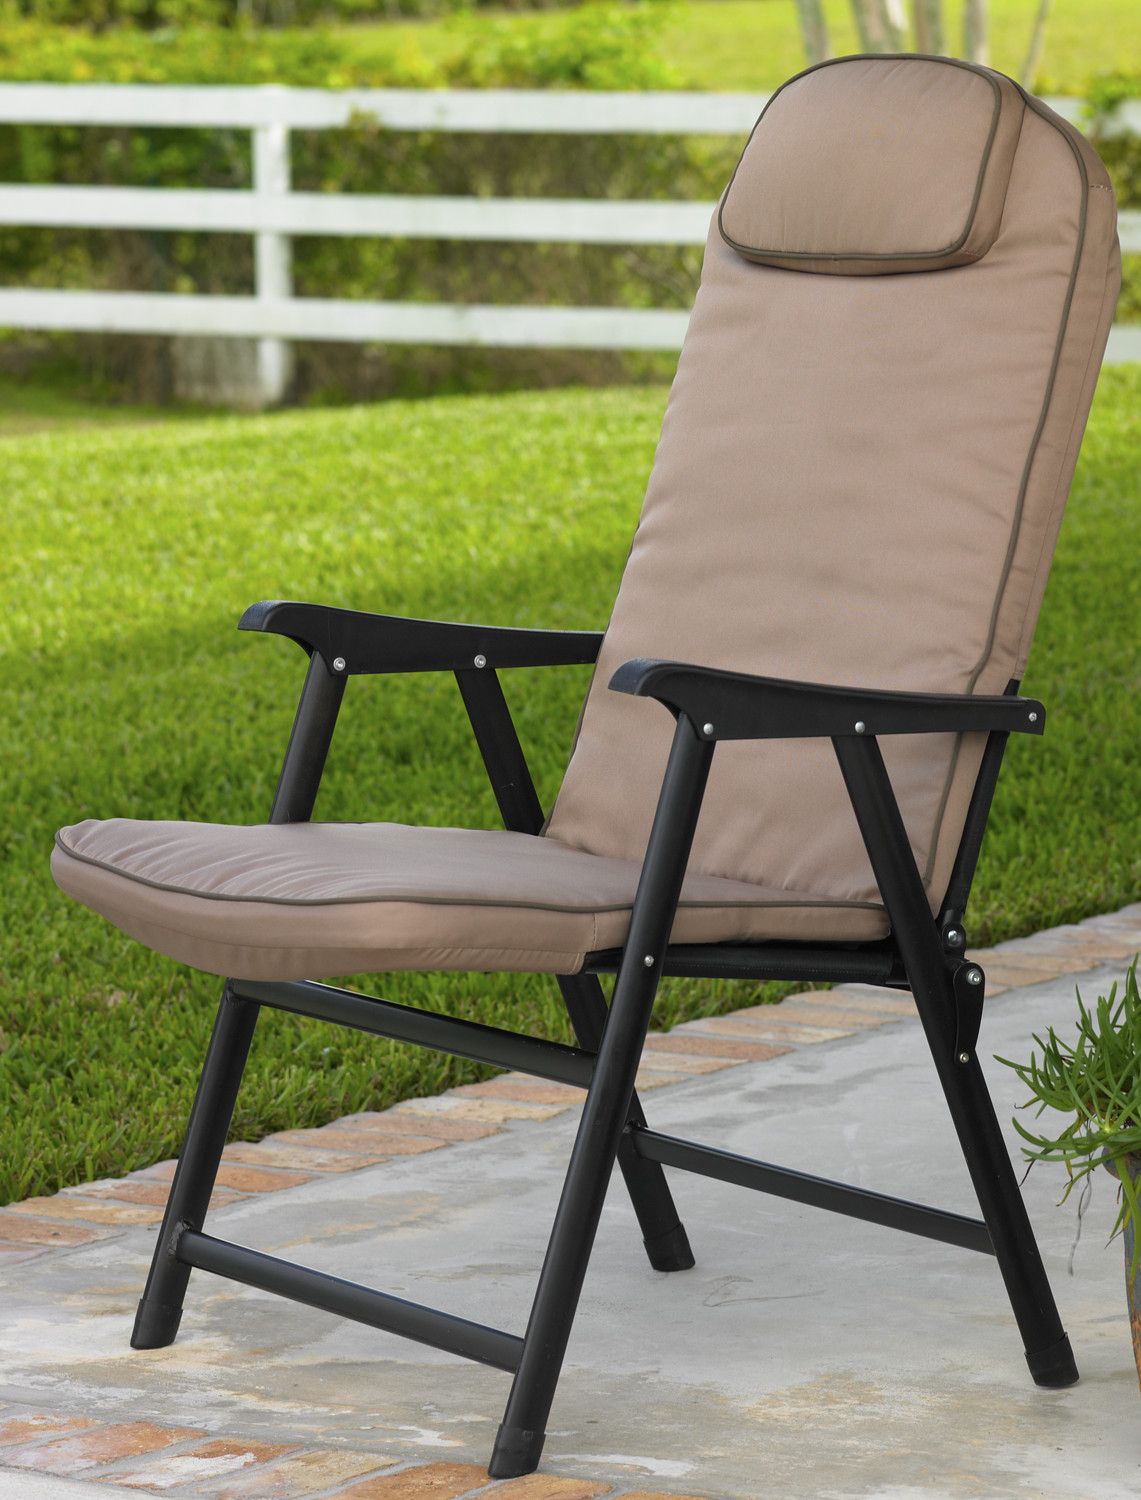 Extra wide folding padded outdoor chair